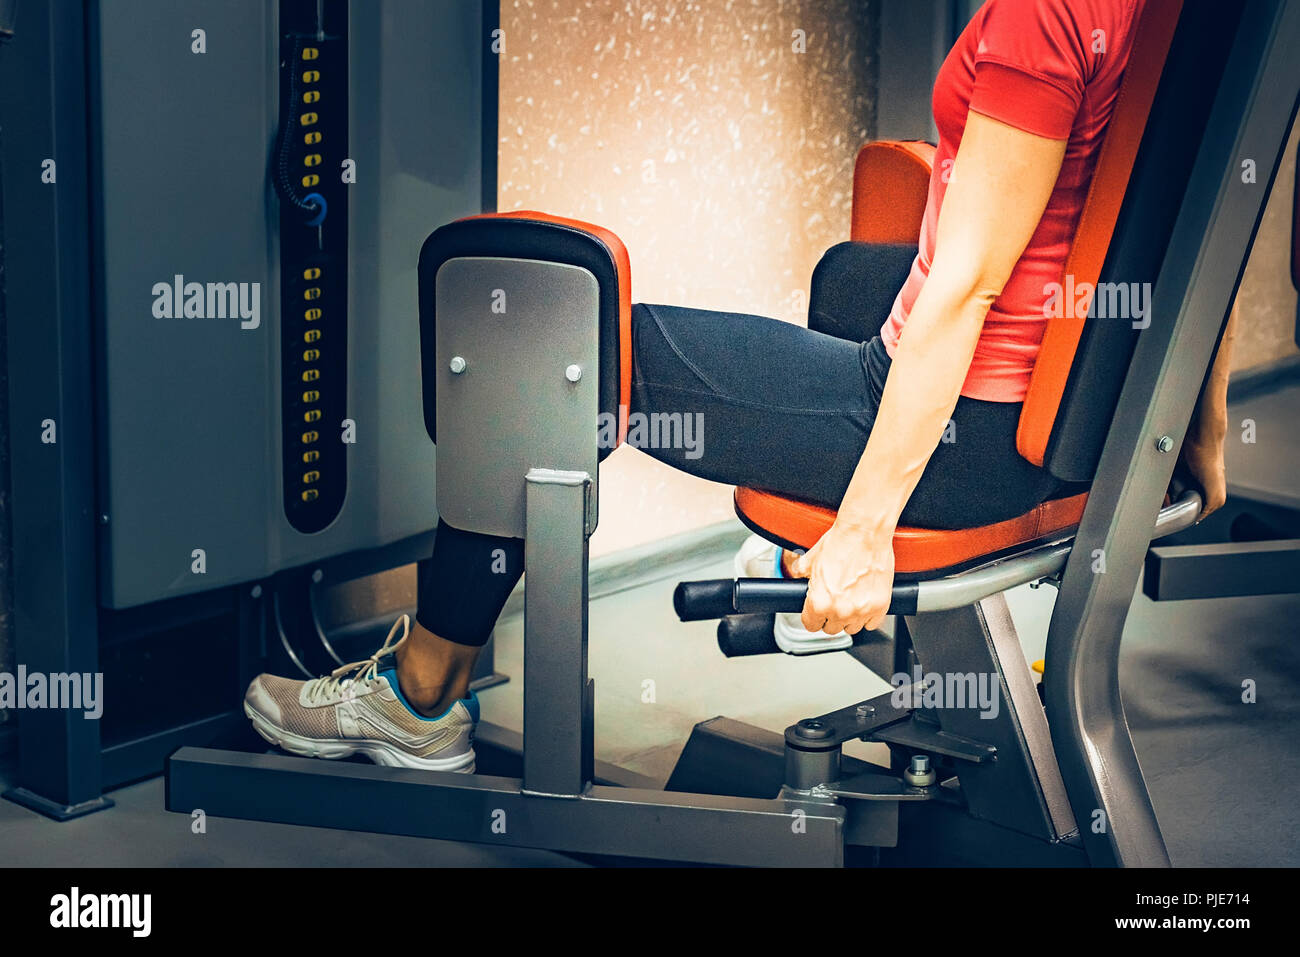 Young woman does leg exercises in gym - Stock Image